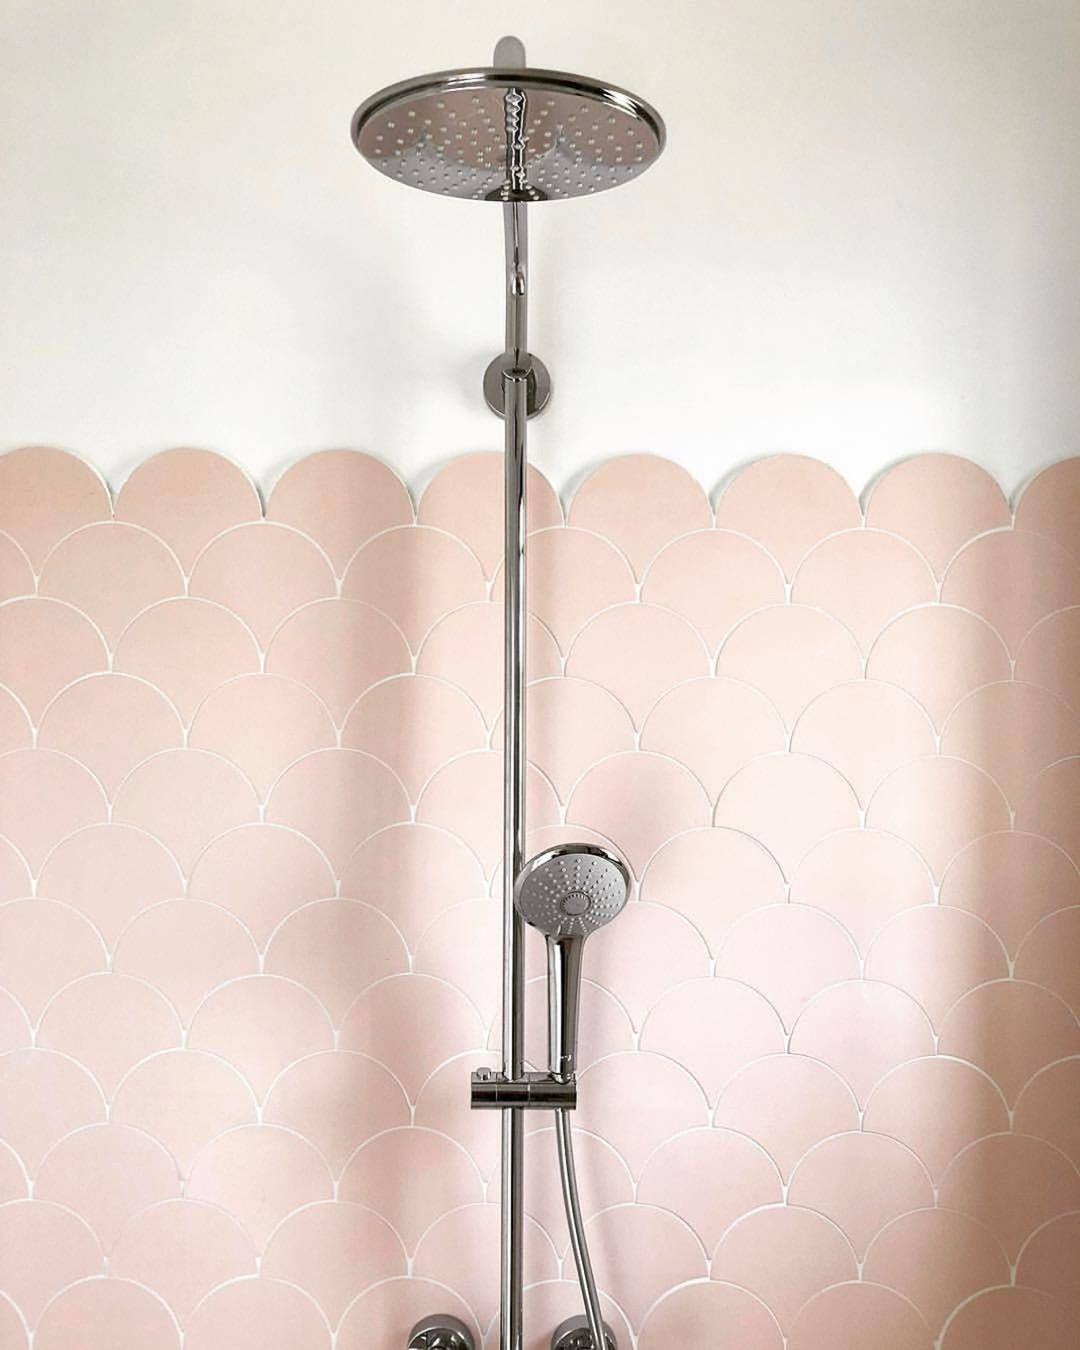 Andmate Tiles Ecailles By Normandy Ceramics Project And